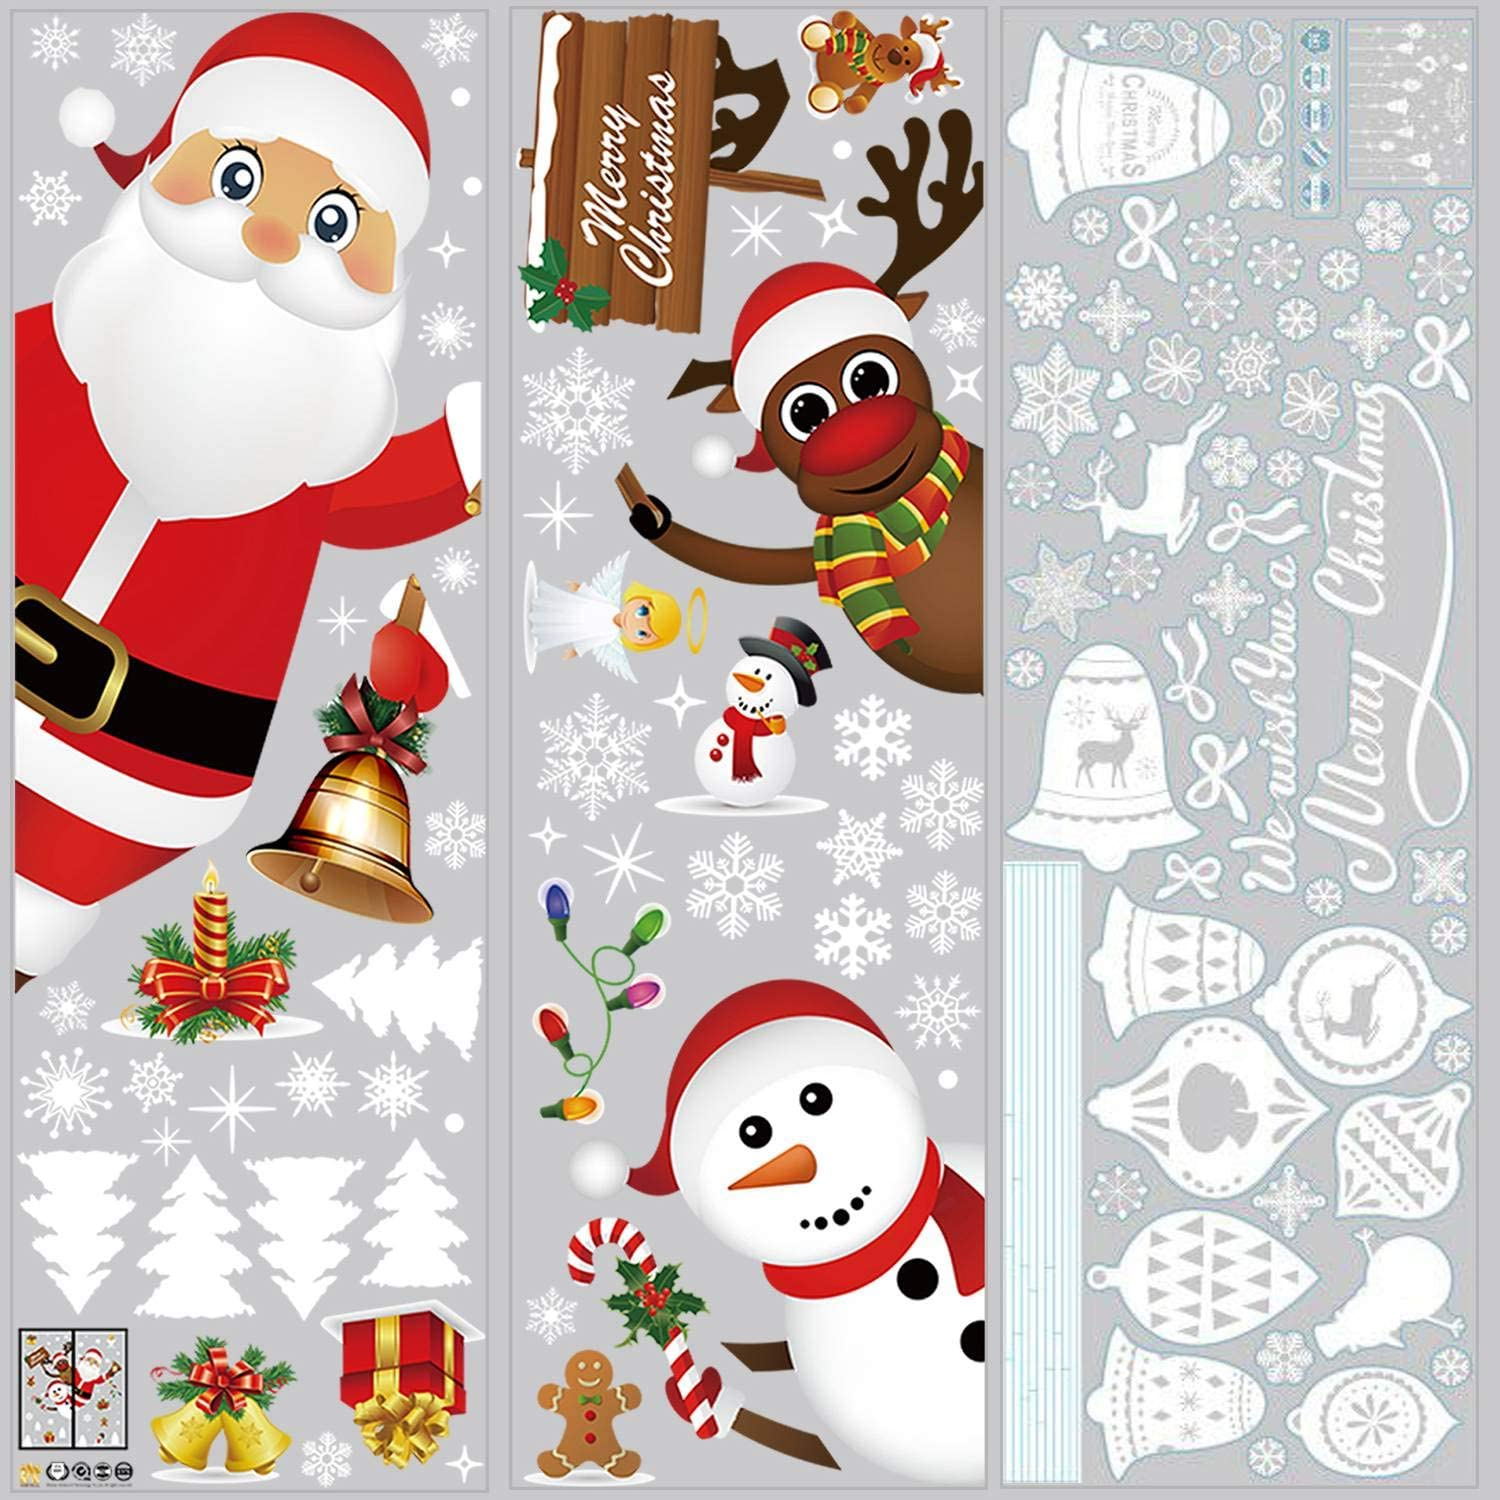 MOONCASE Christmas Window Stickers, 120 Pcs Snowflake Bell Santa Claus Reindeer Snowman Christmas Decoration Mirror Glass Door Window Decals Home Decor for New Years Party Decoration